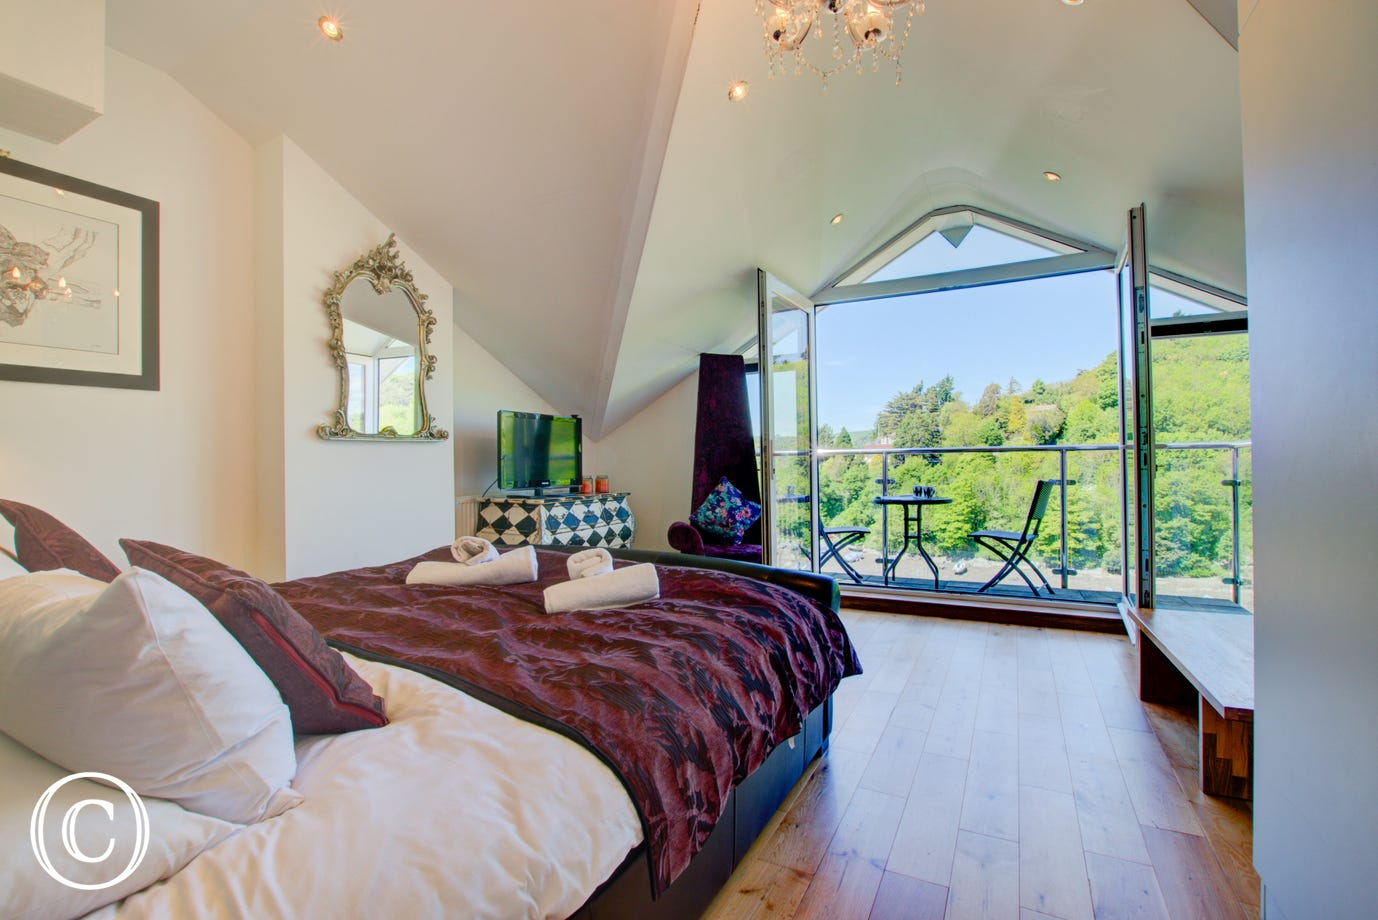 Bedroom 4: Super King size bed with sitting area, kitchen with  table and chairs and balcony with wonderful panoramic views out over the creek and across to Dartmouth